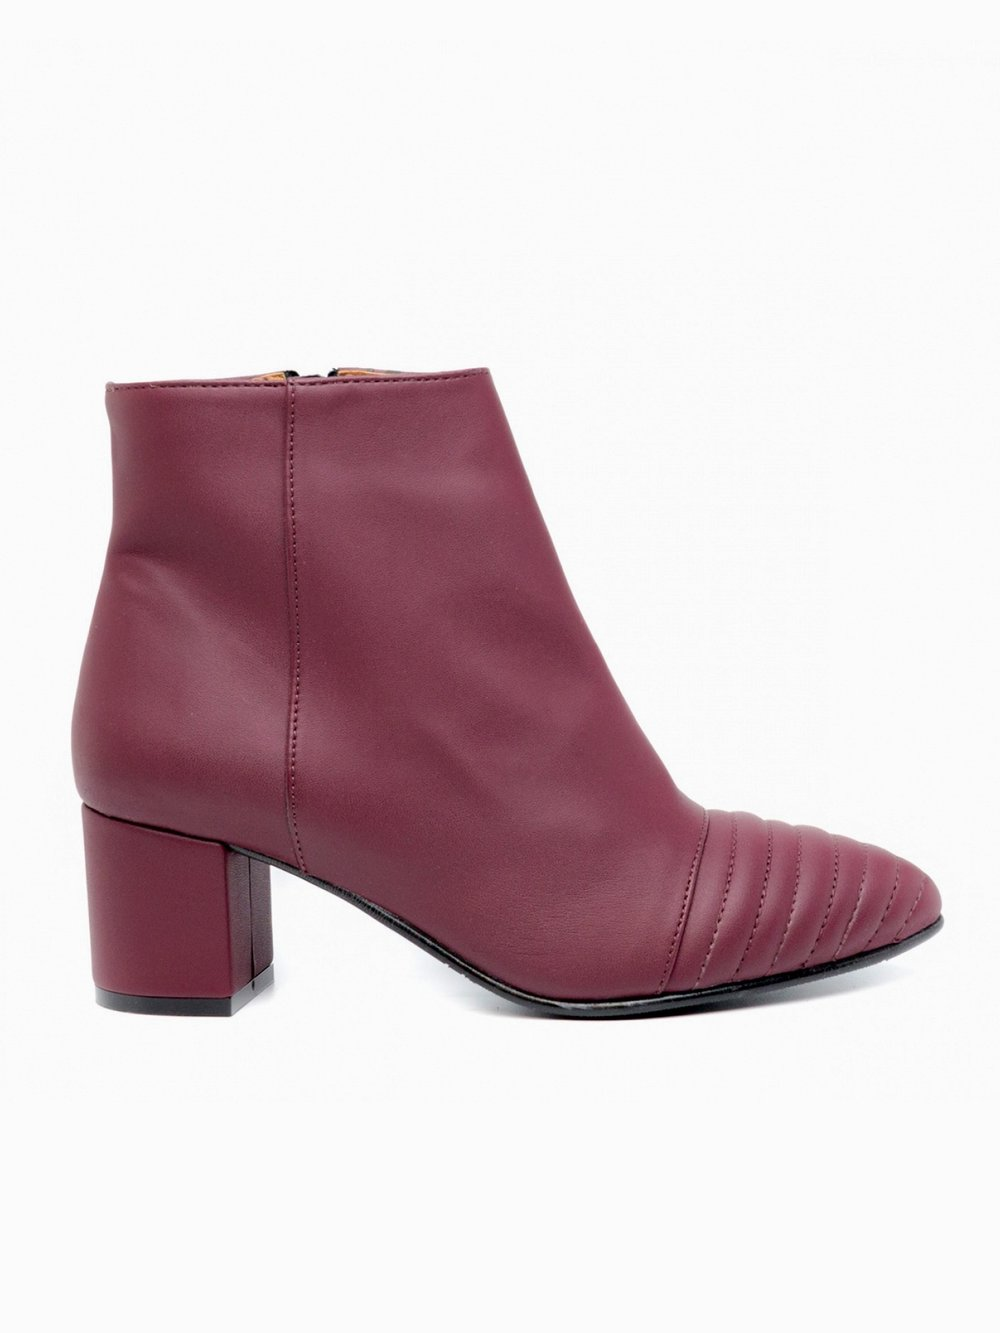 Vegan Boots - Nae Vegan Ankle Boots in Bordeaux